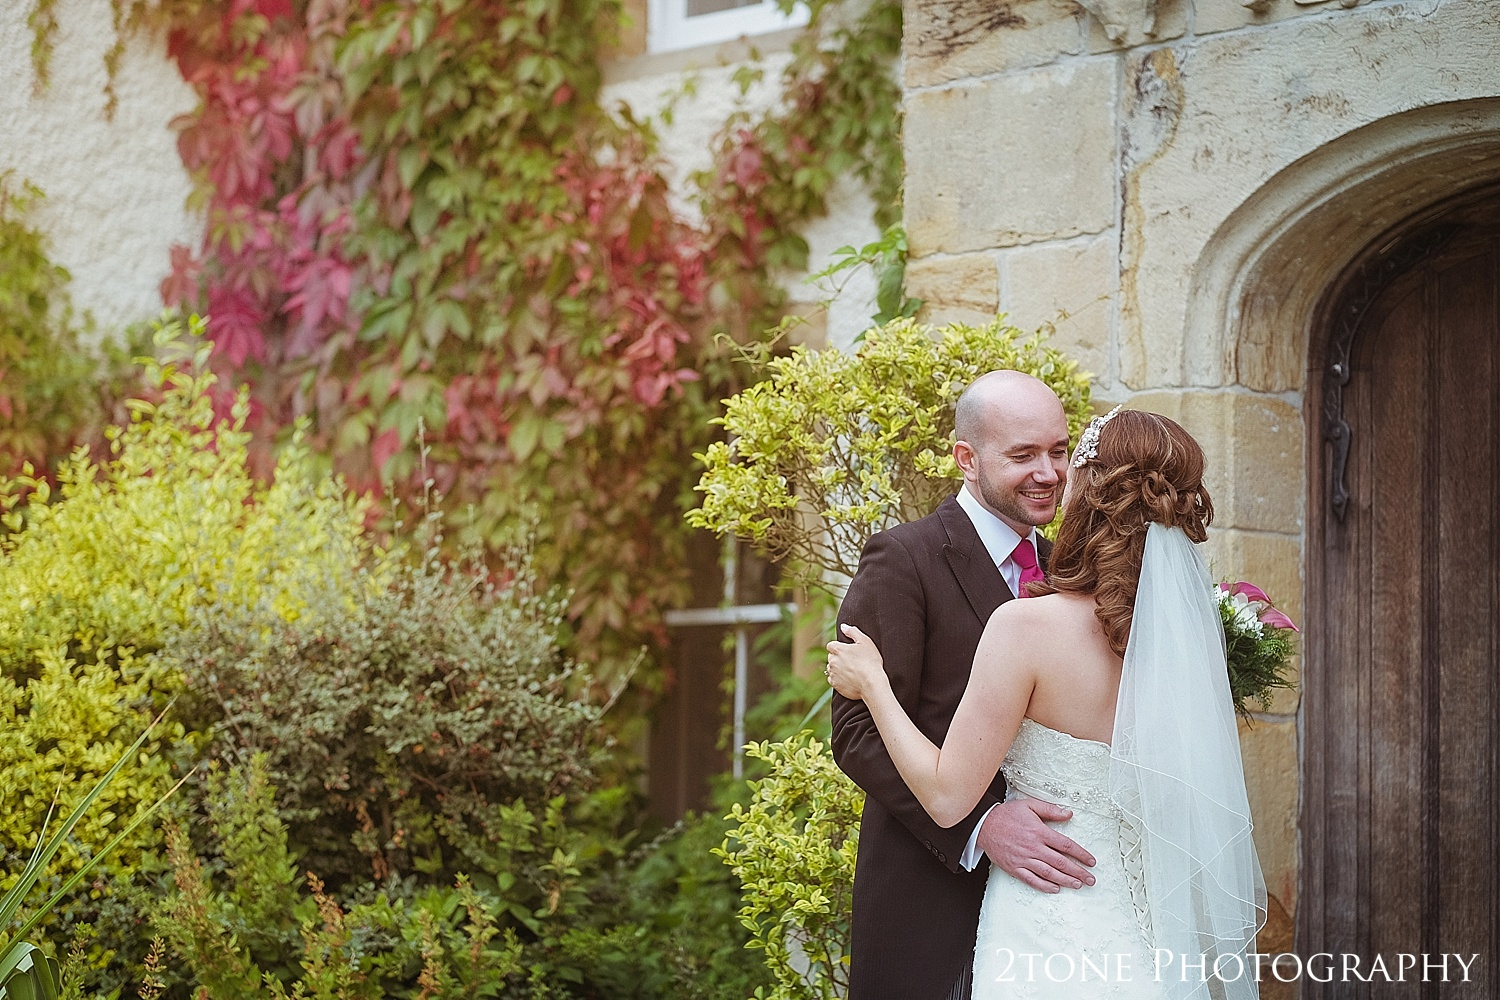 Lartington Hall is a beautiful location with countless places to take gorgeous photographs.